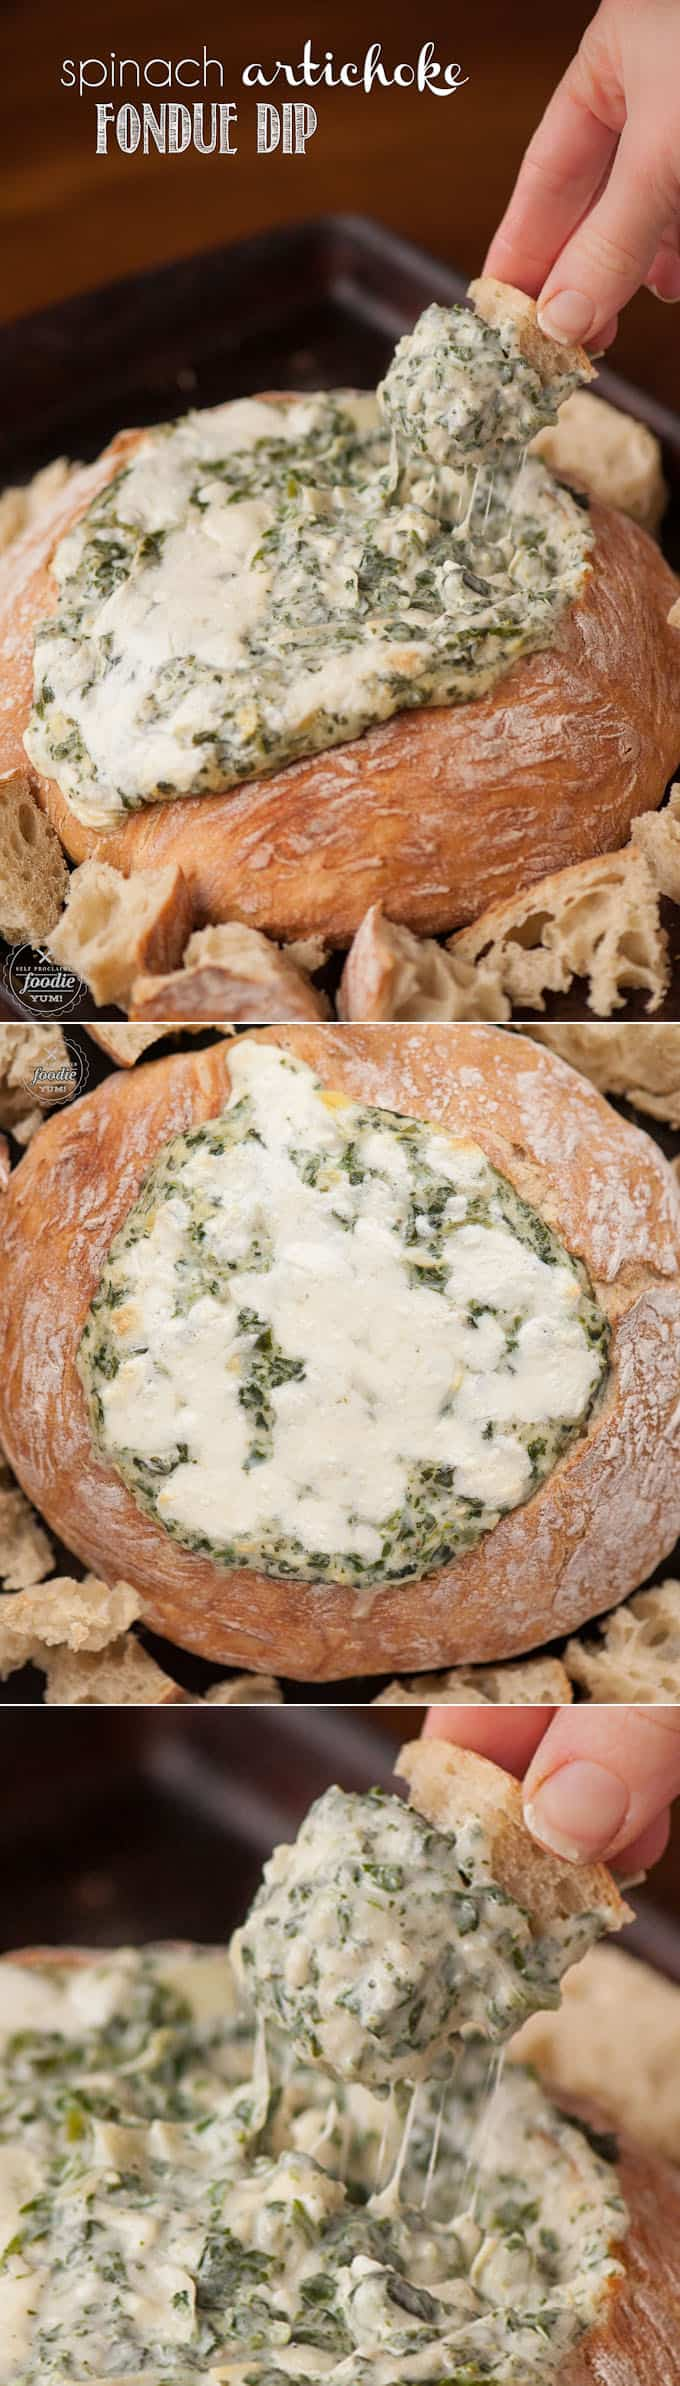 Unlike warm cheesy dips made with cream cheese or mayonnaise, this Spinach Artichoke Fondue Dip is made with Gruyere, Parmesan, and mozzarella.